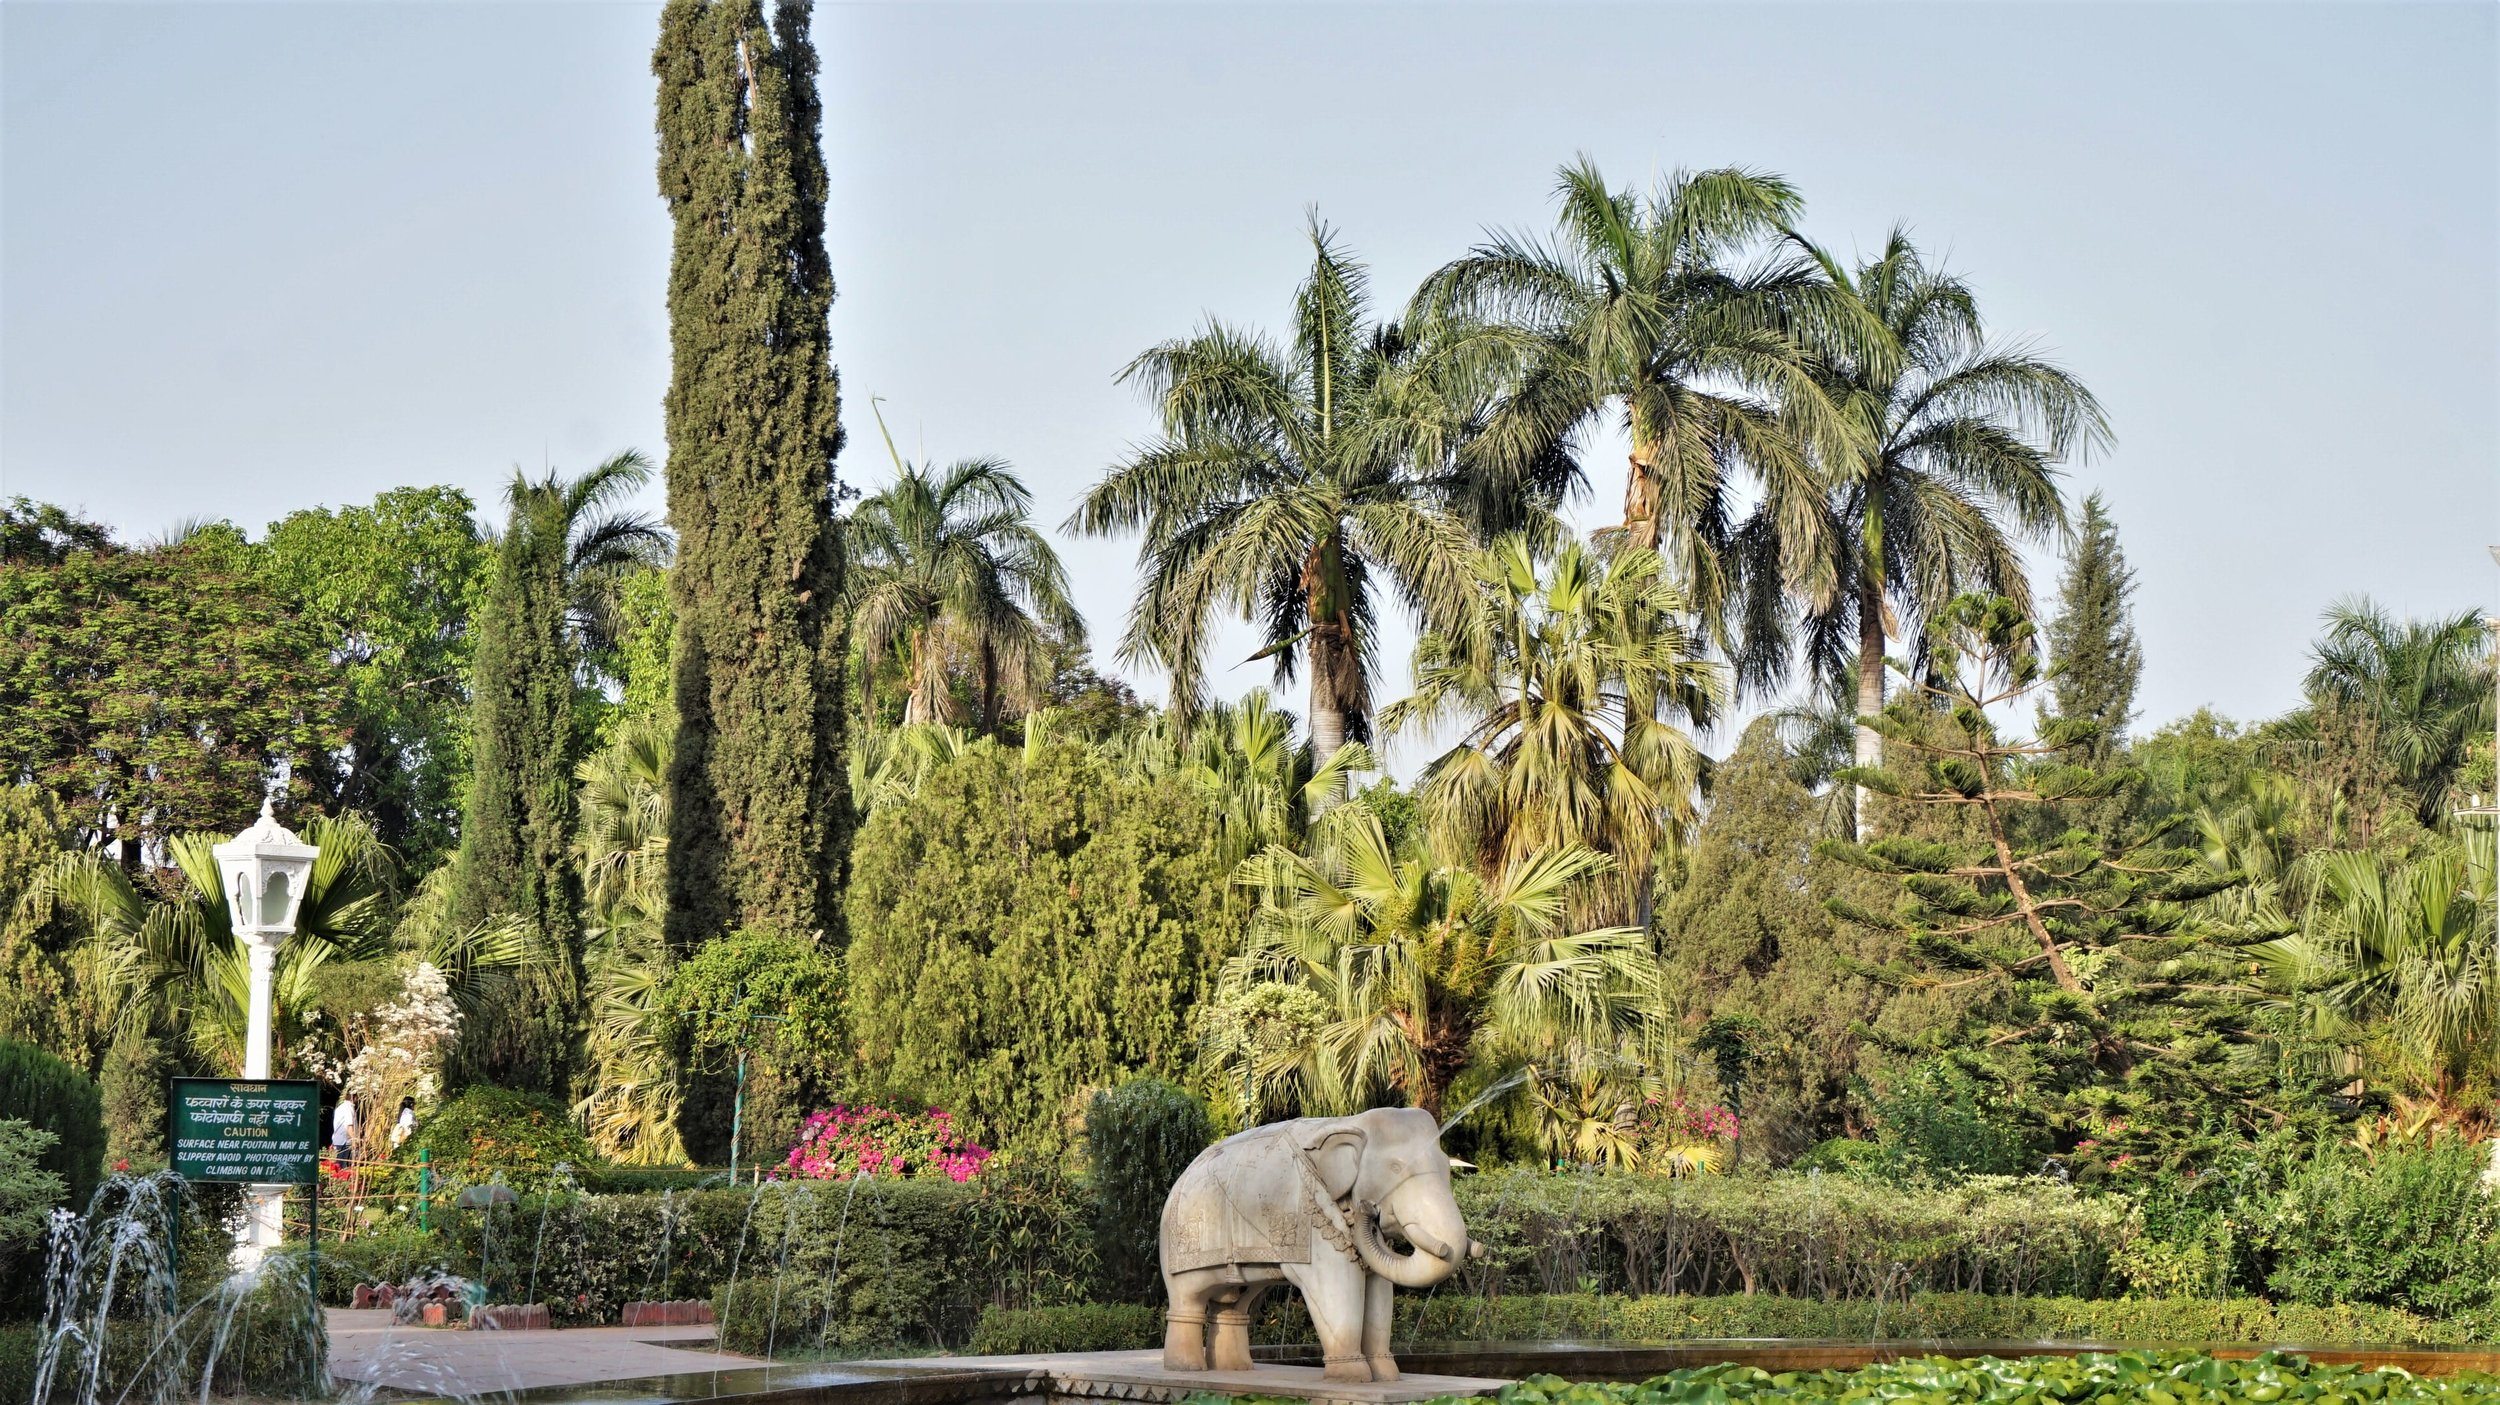 Saheliyo Ki Bari garden is one of the most beautiful place to visit in Udaipur.